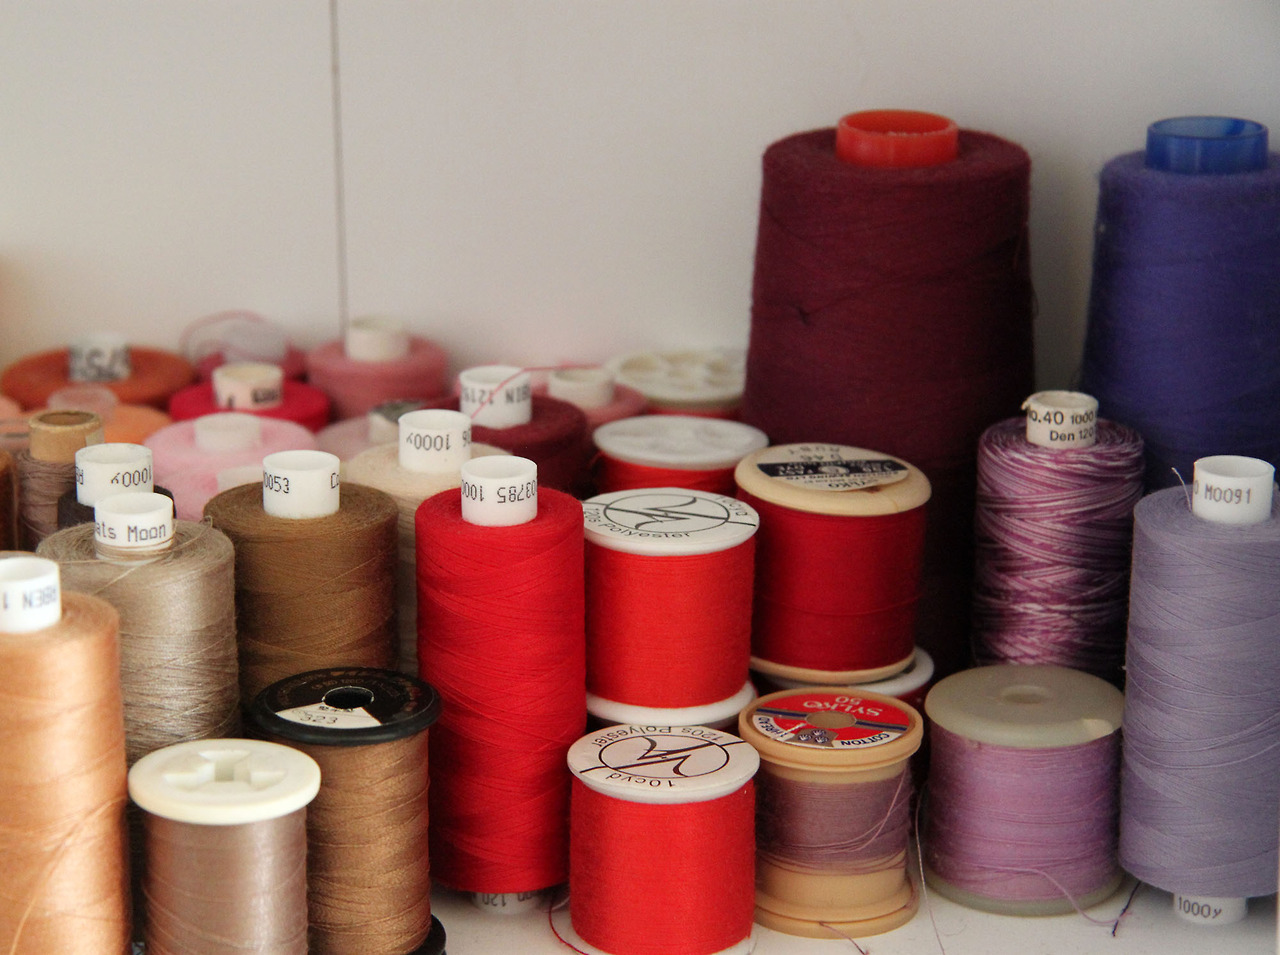 Machine embroidery threads in brown, red and purple